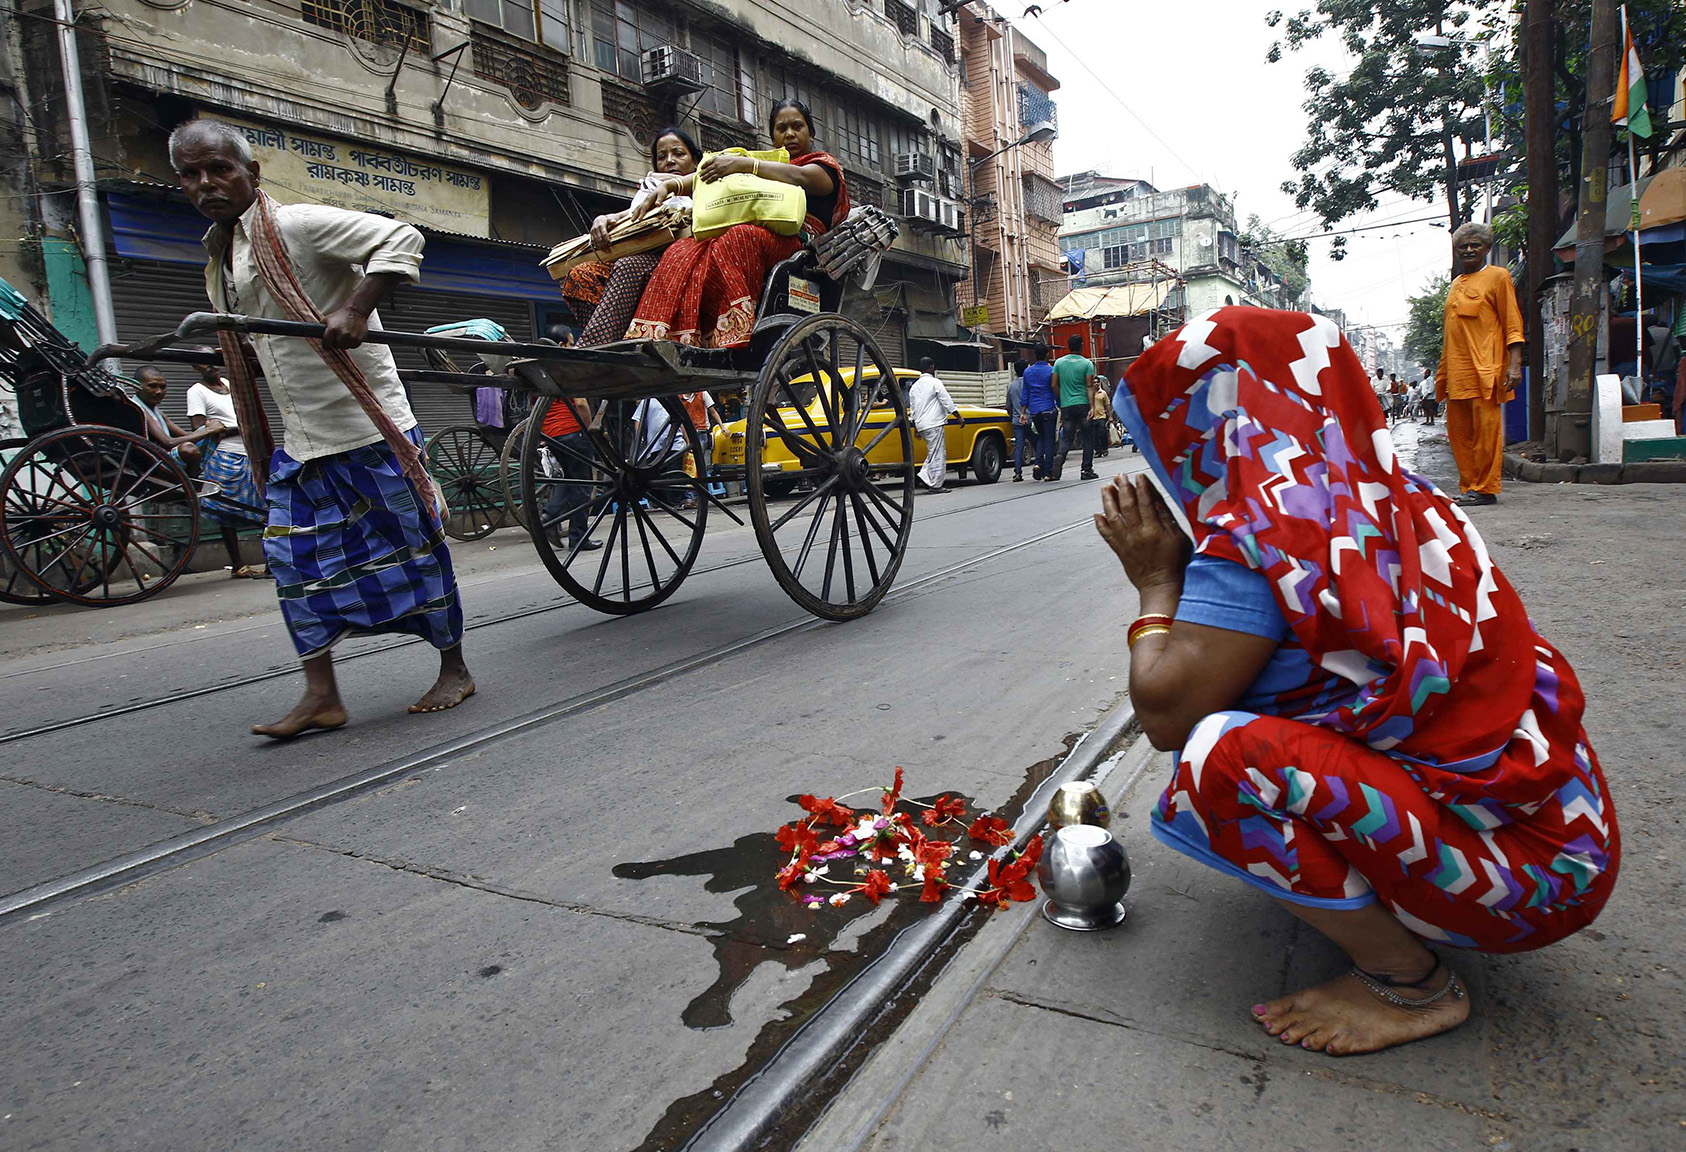 A woman offers prayers by a road as a rickshaw puller transports passengers in Kolkata